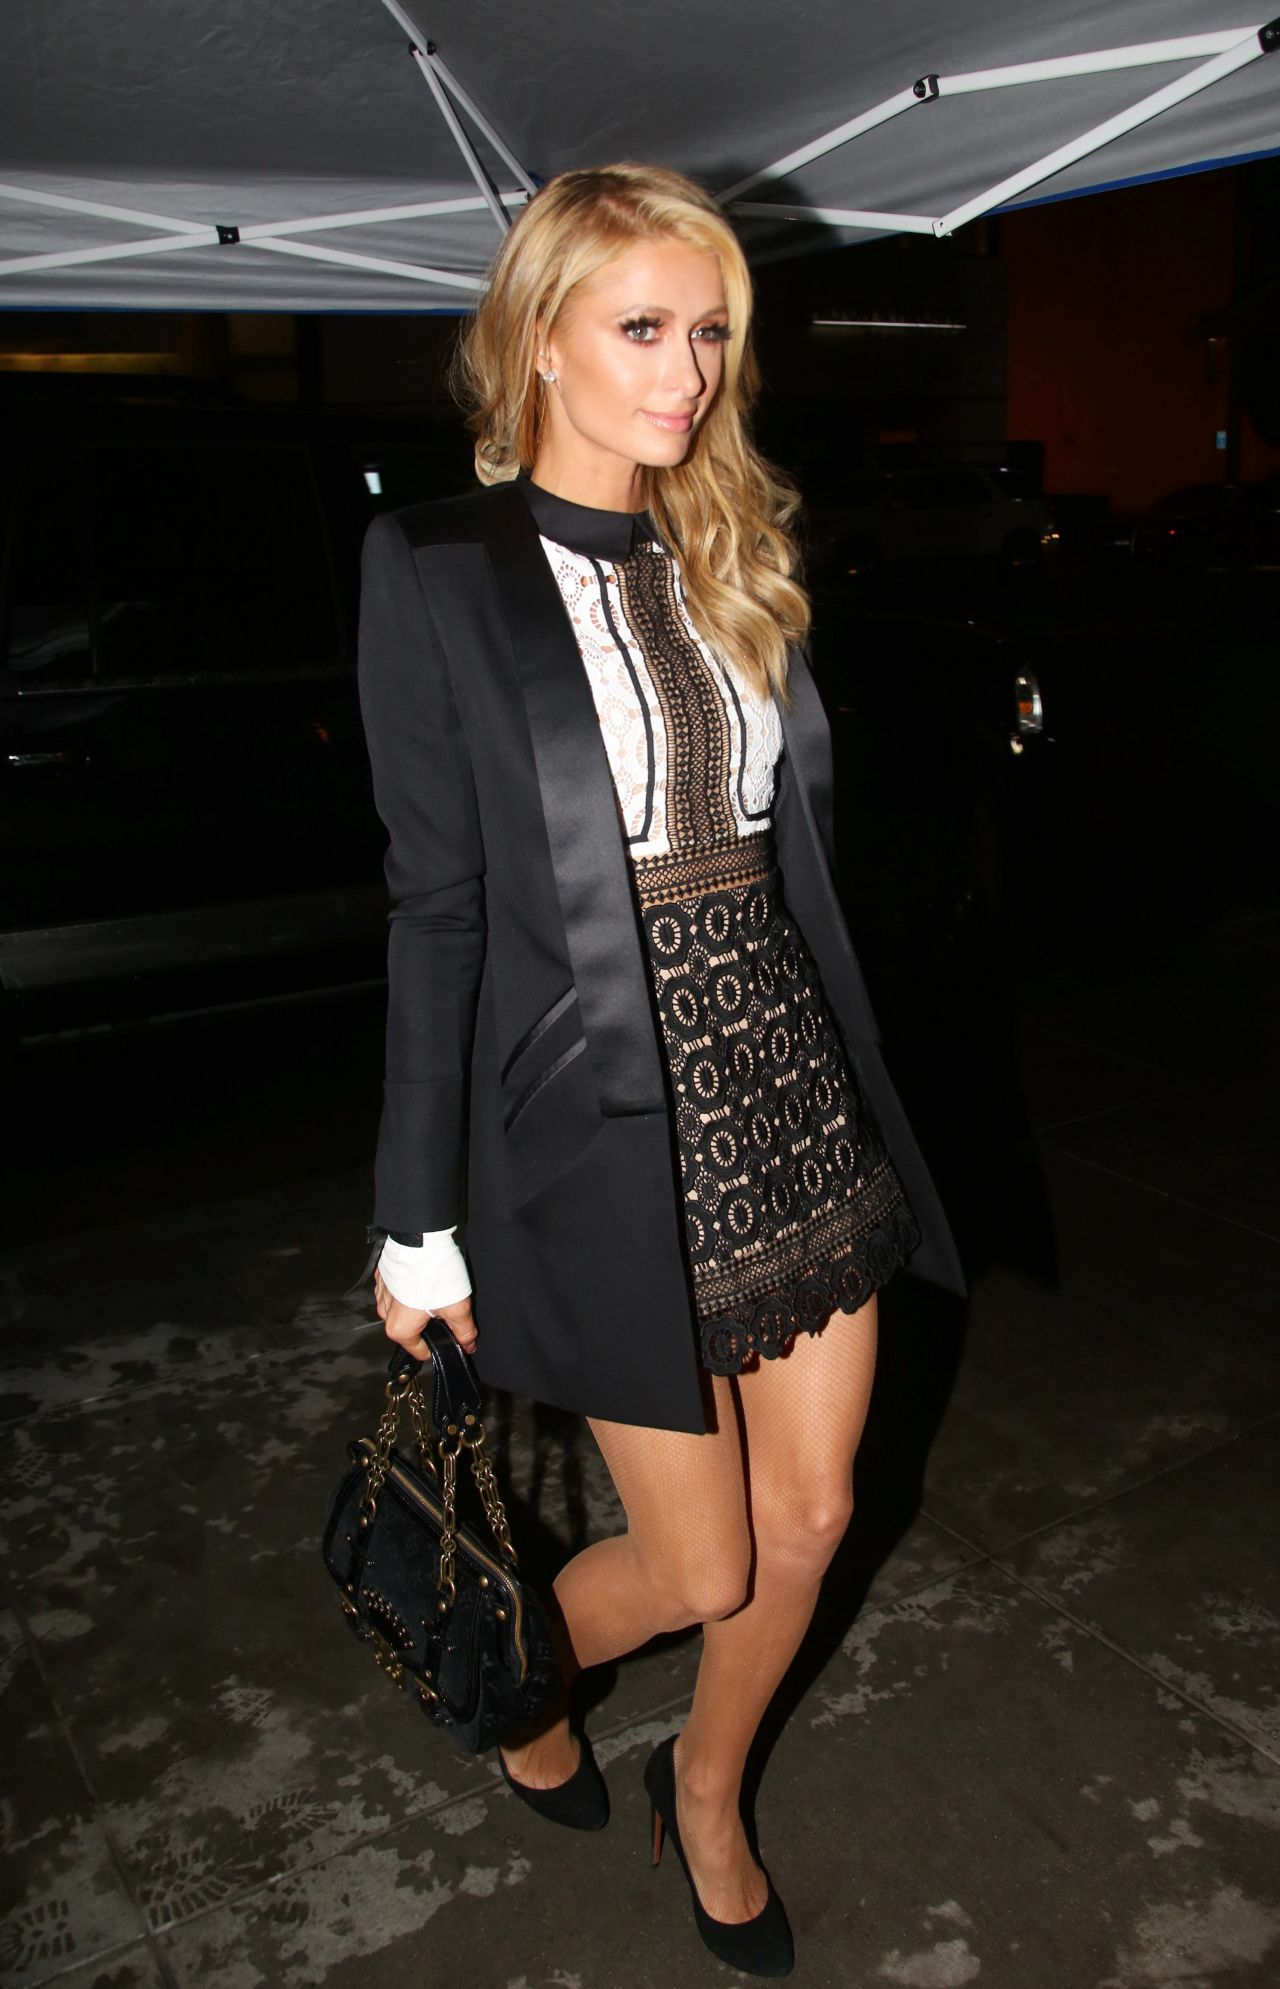 Paris Hilton Night Out Style - The Palm Restaurant in